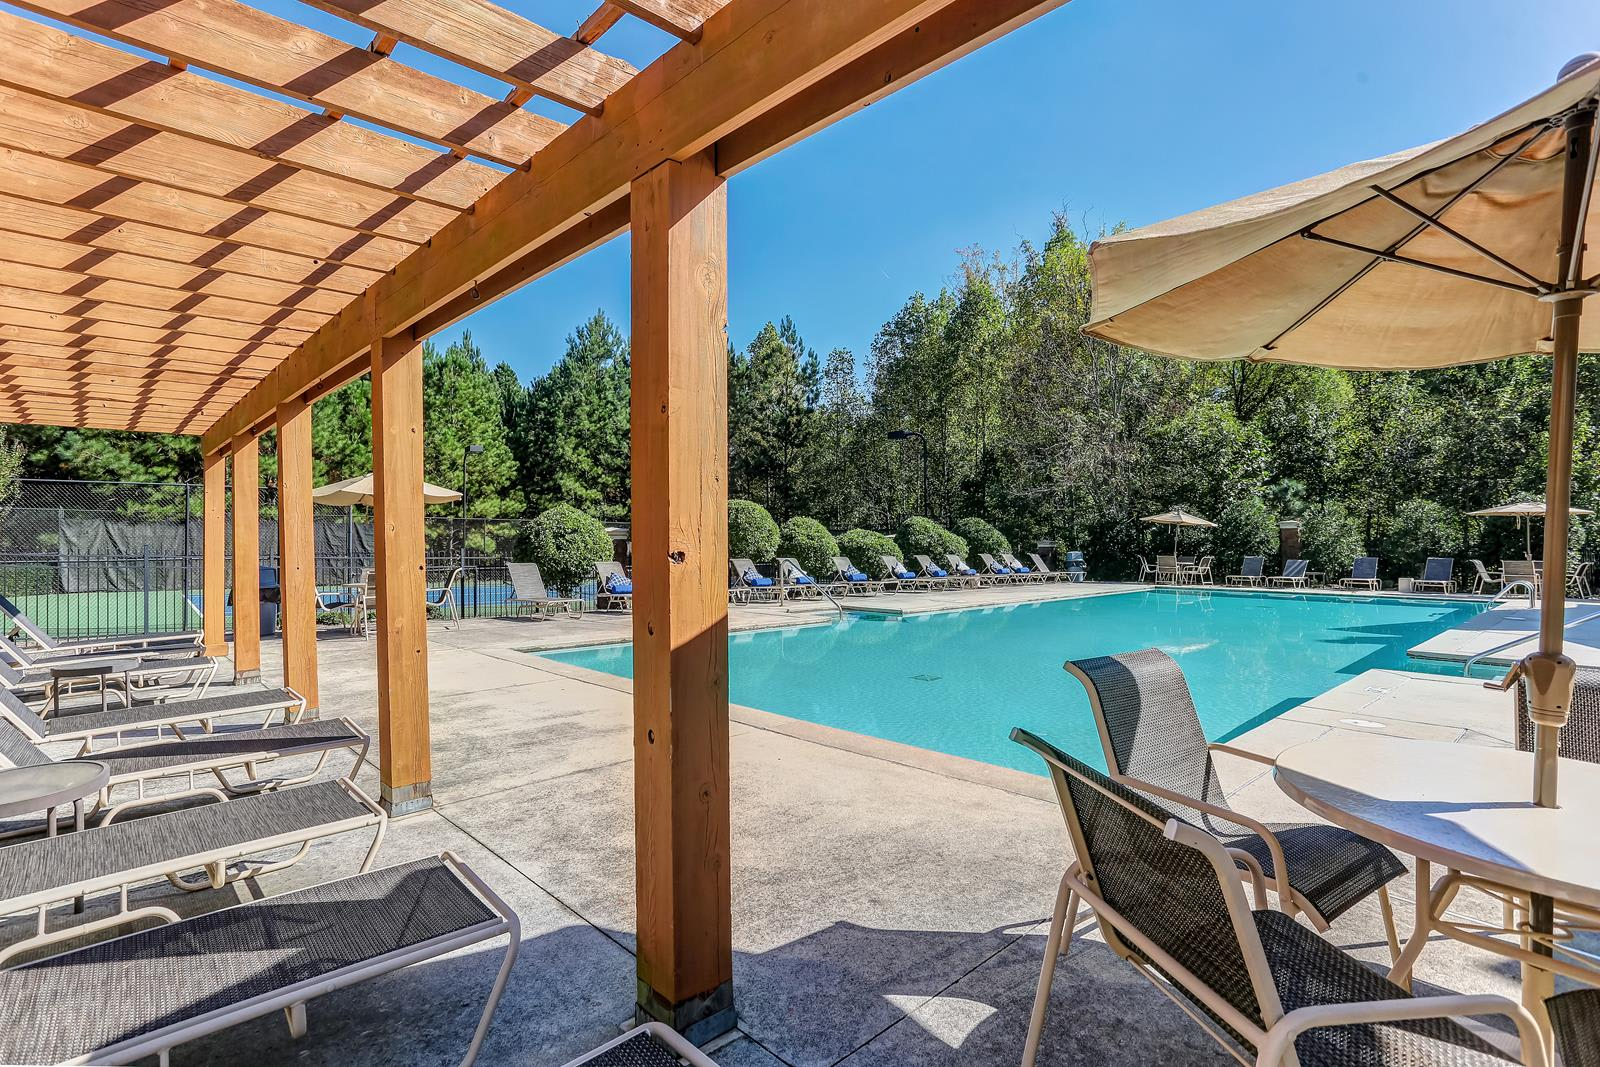 Poolside Sundeck With Relaxing Chairs at Tramore Village Apartment Homes, Austell, GA, 30106